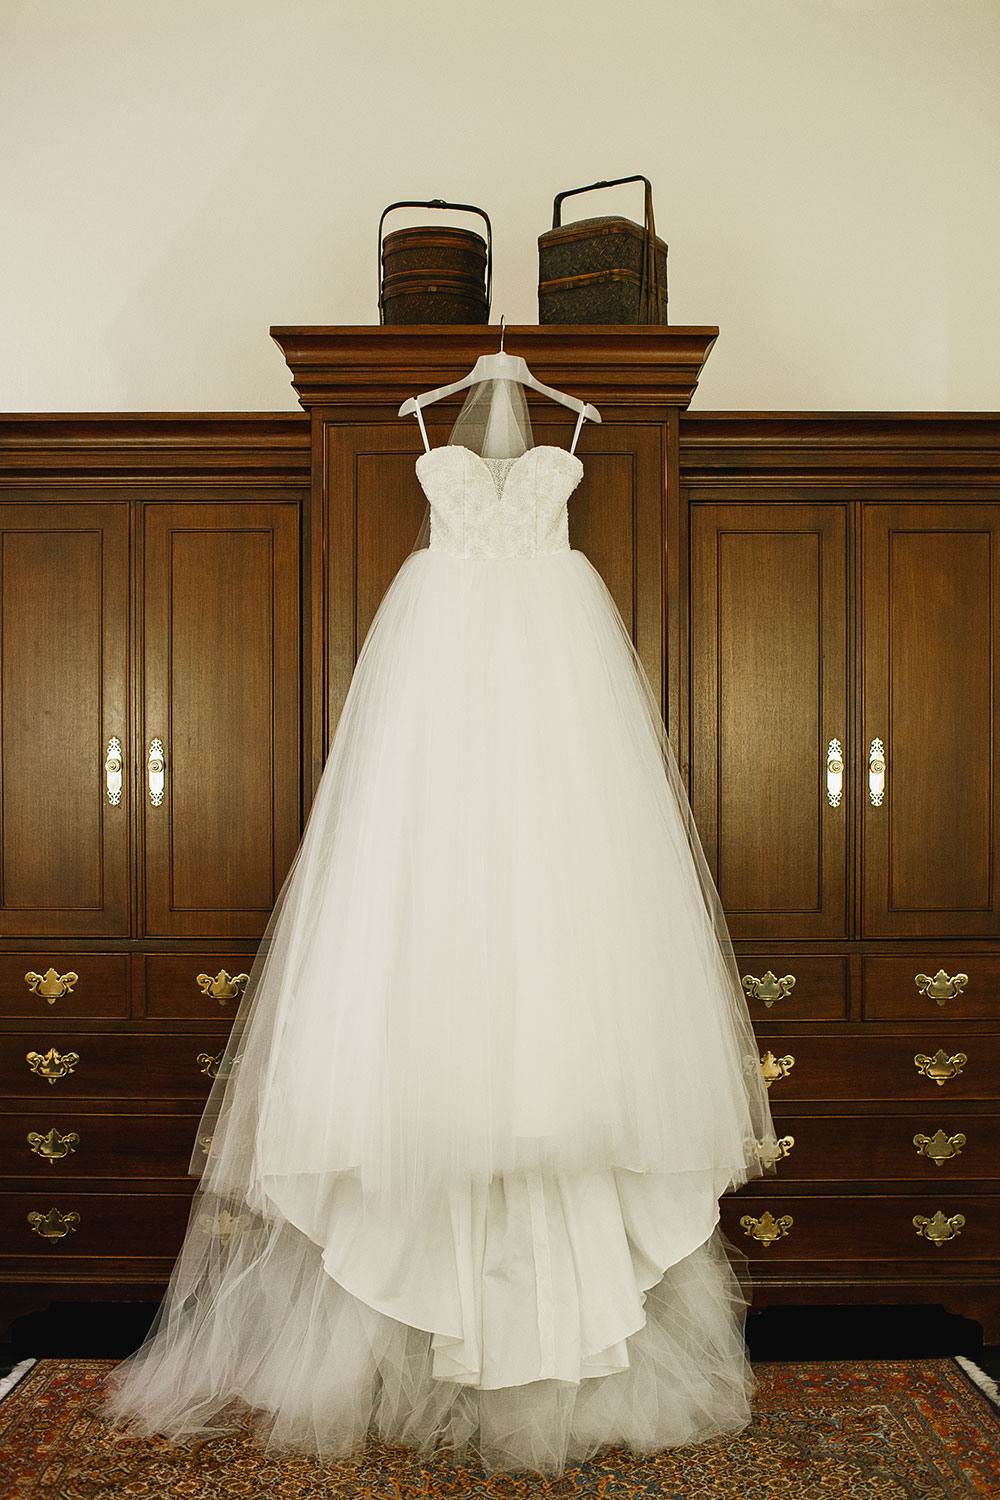 Singaore-Raffles-Hotel-Wedding-dress-photo